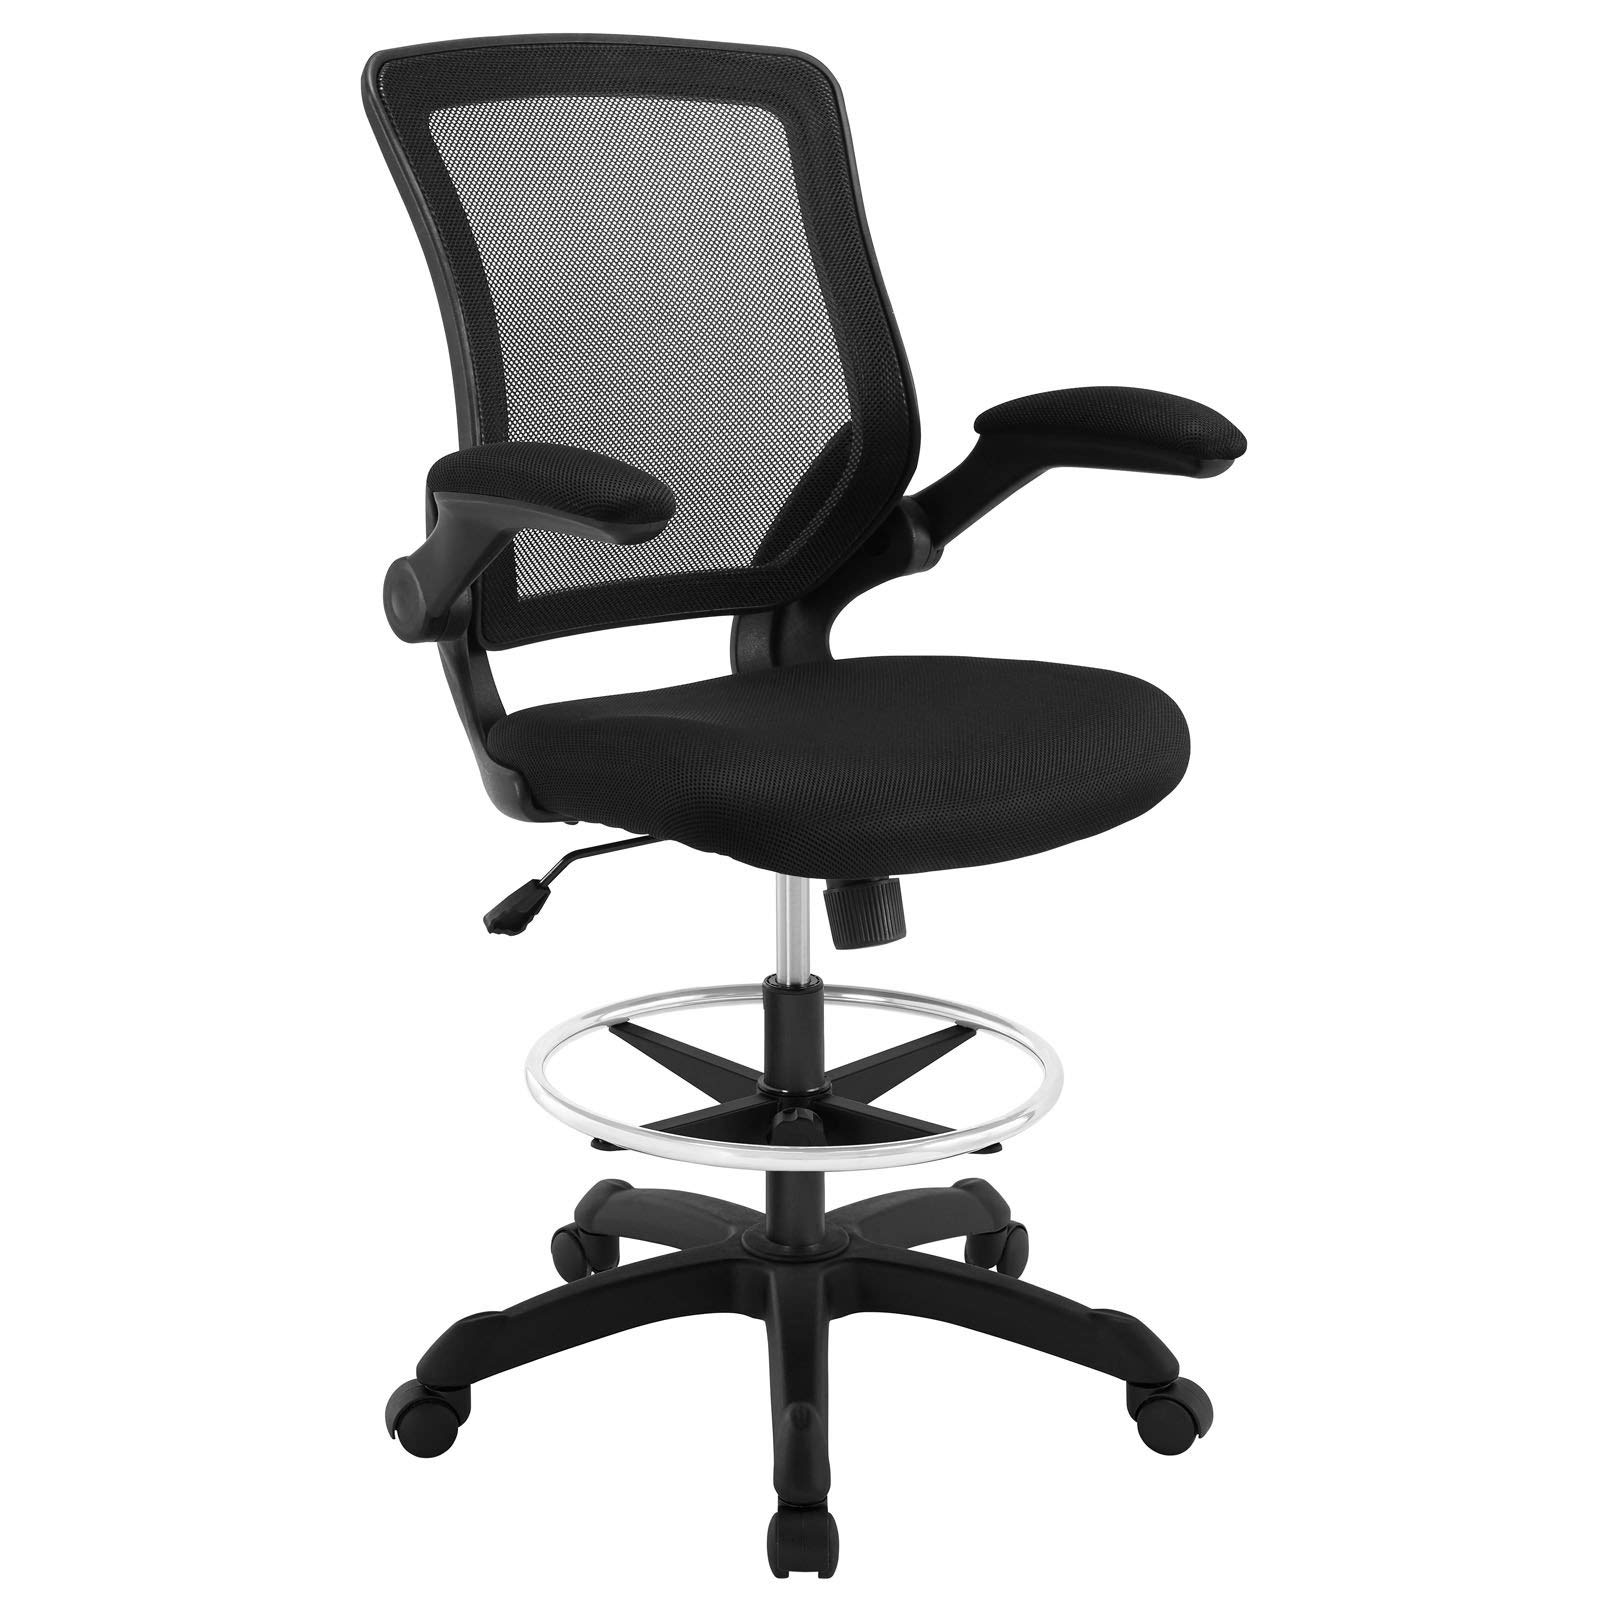 Modway Veer Drafting Chair In Black - Reception Desk Chair - Tall Office Chair For Adjustable Standing Desks - Flip-Up Arm Drafting Table Chair... (Renewed) by Modway